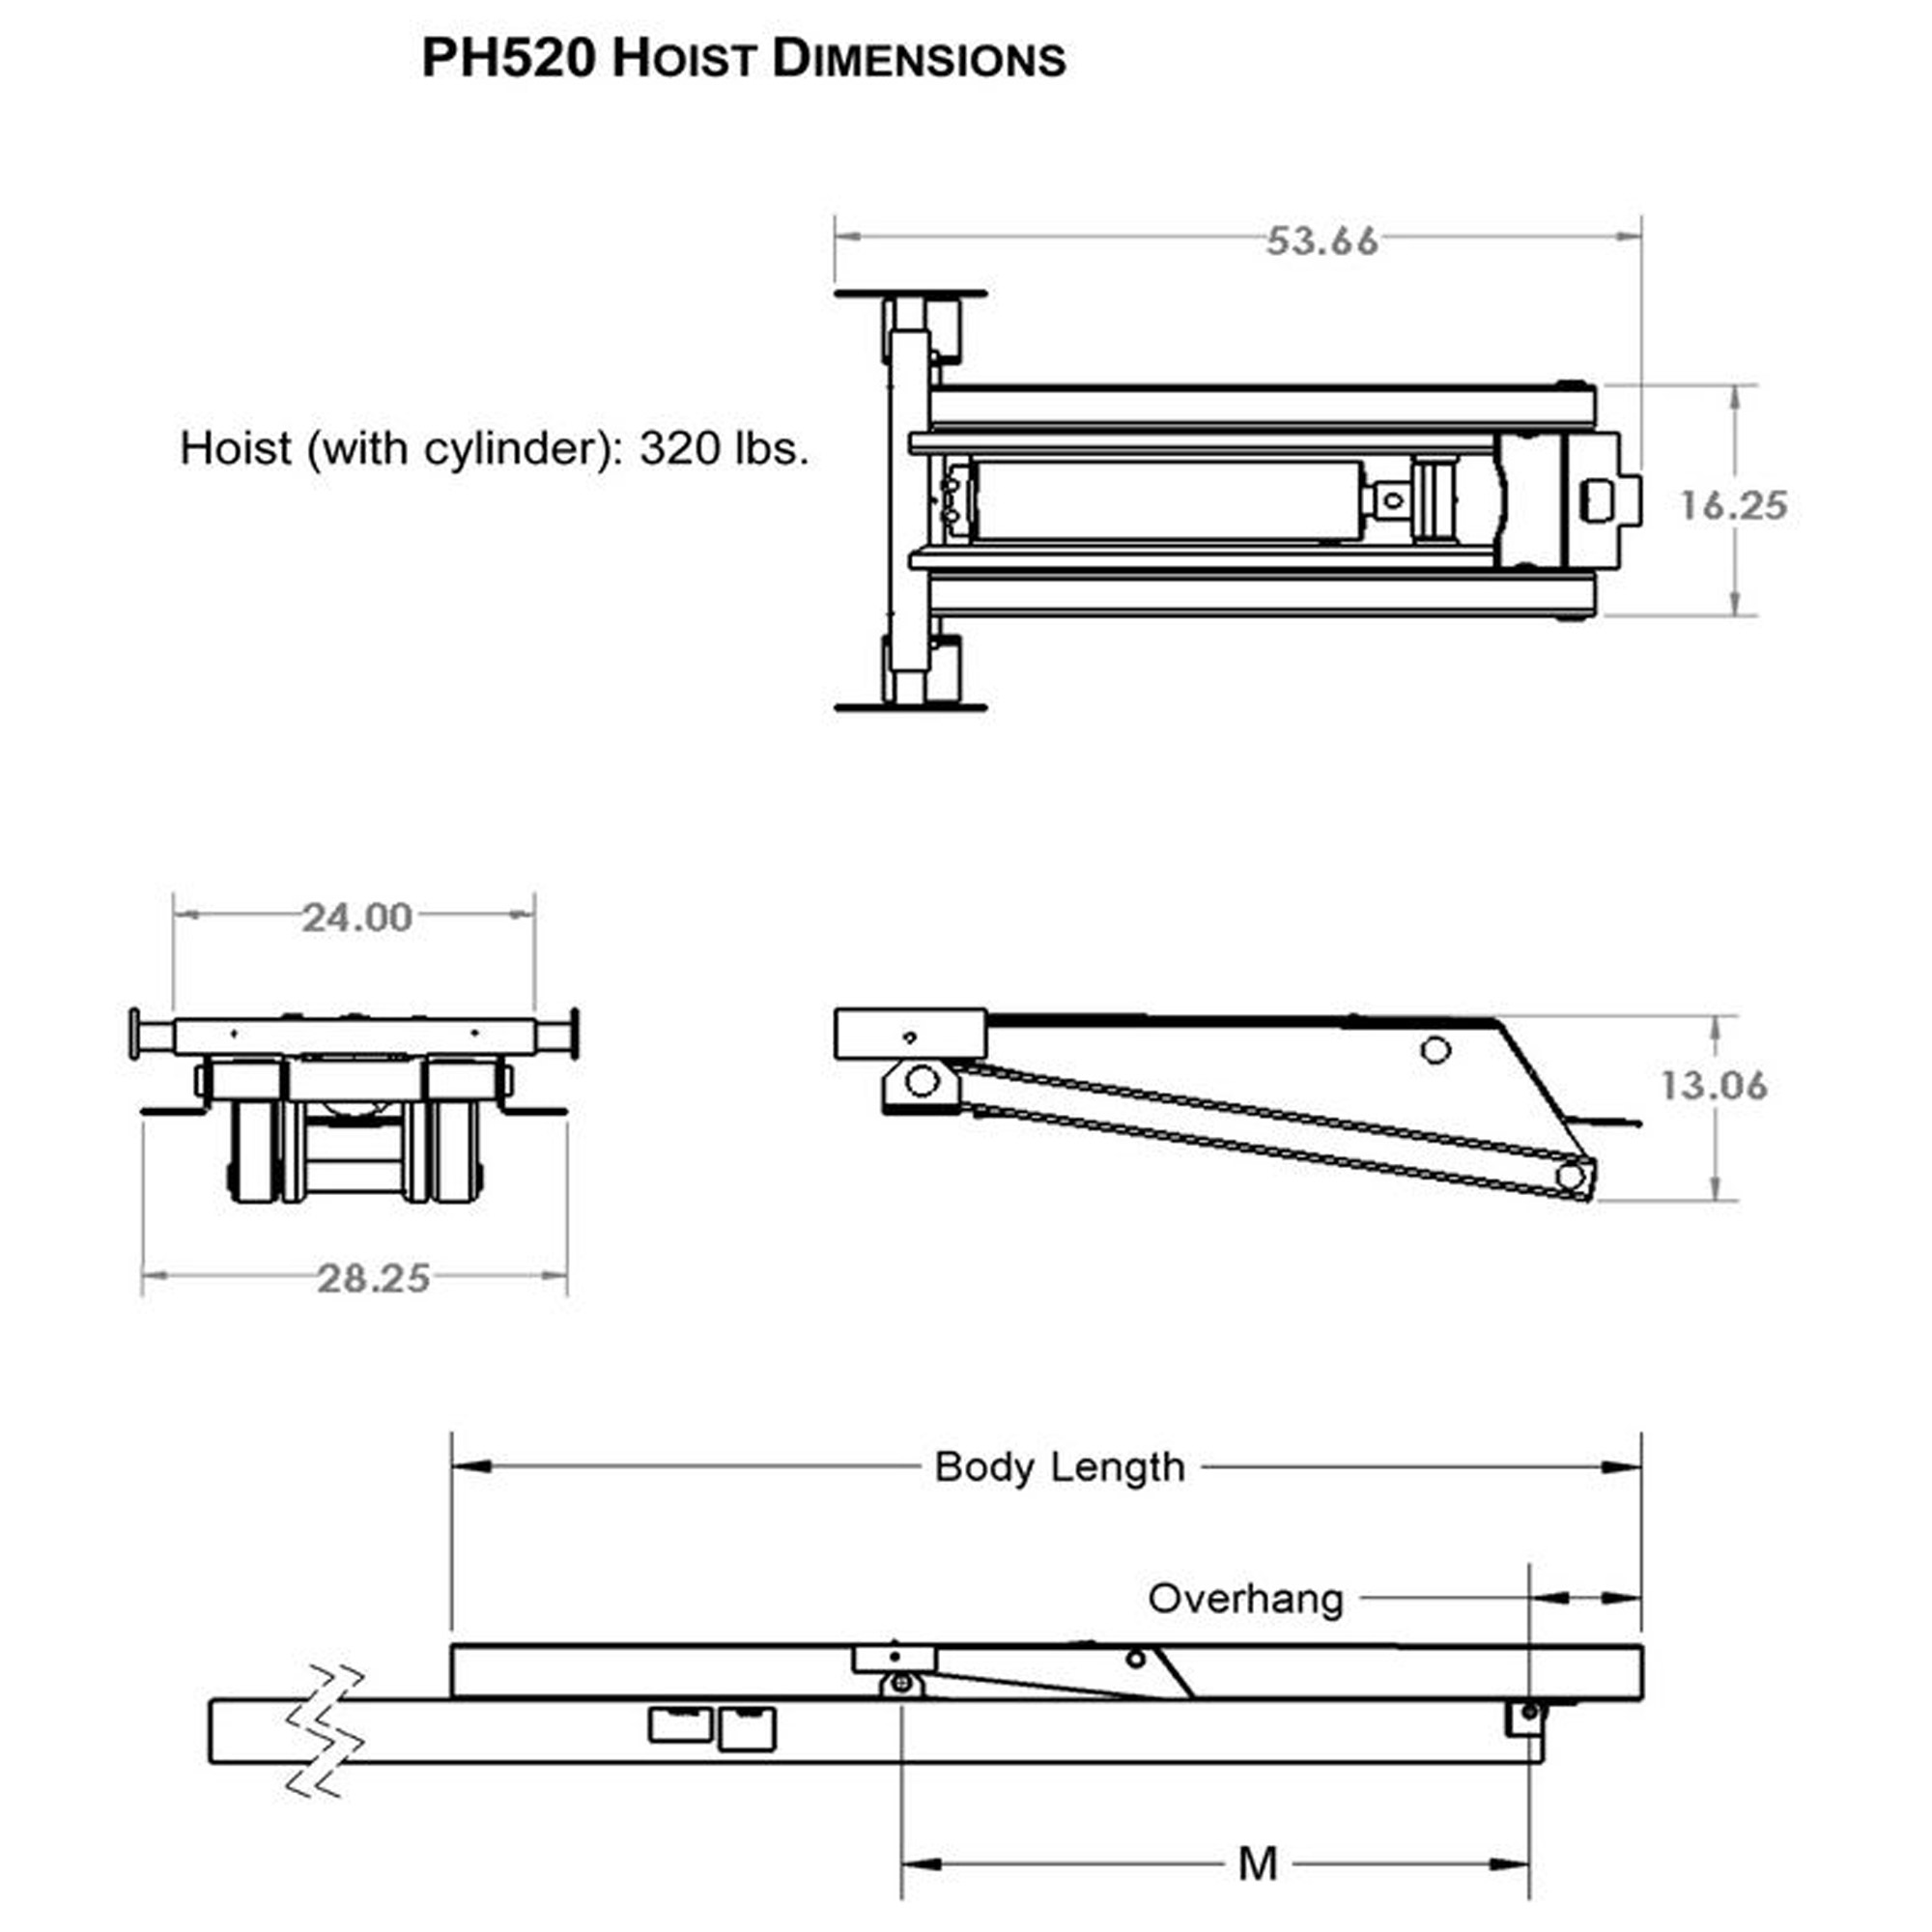 10 ton 20000 lb dump trailer hydraulic scissor hoist kit ph520 10 ton 20000 lb dump trailer hydraulic power hoist dimensions model ph520 diagram asfbconference2016